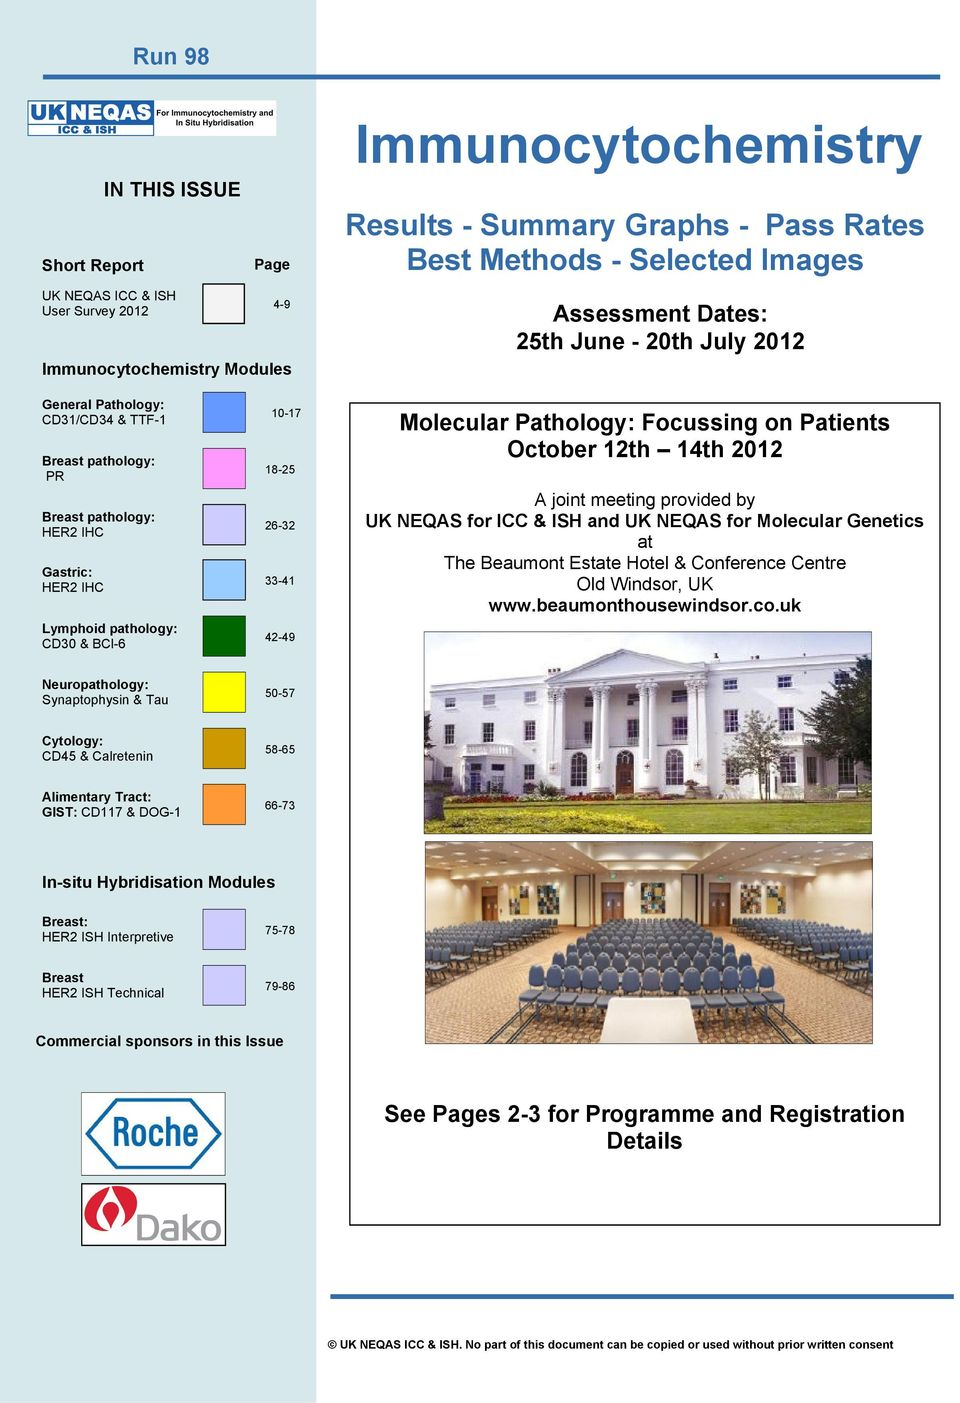 33-41 42-49 Molecular Pathology: Focussing on Patients October 12th 14th 212 A joint meeting provided by UK NEQAS for ICC & ISH and UK NEQAS for Molecular Genetics at The Beaumont Estate Hotel &